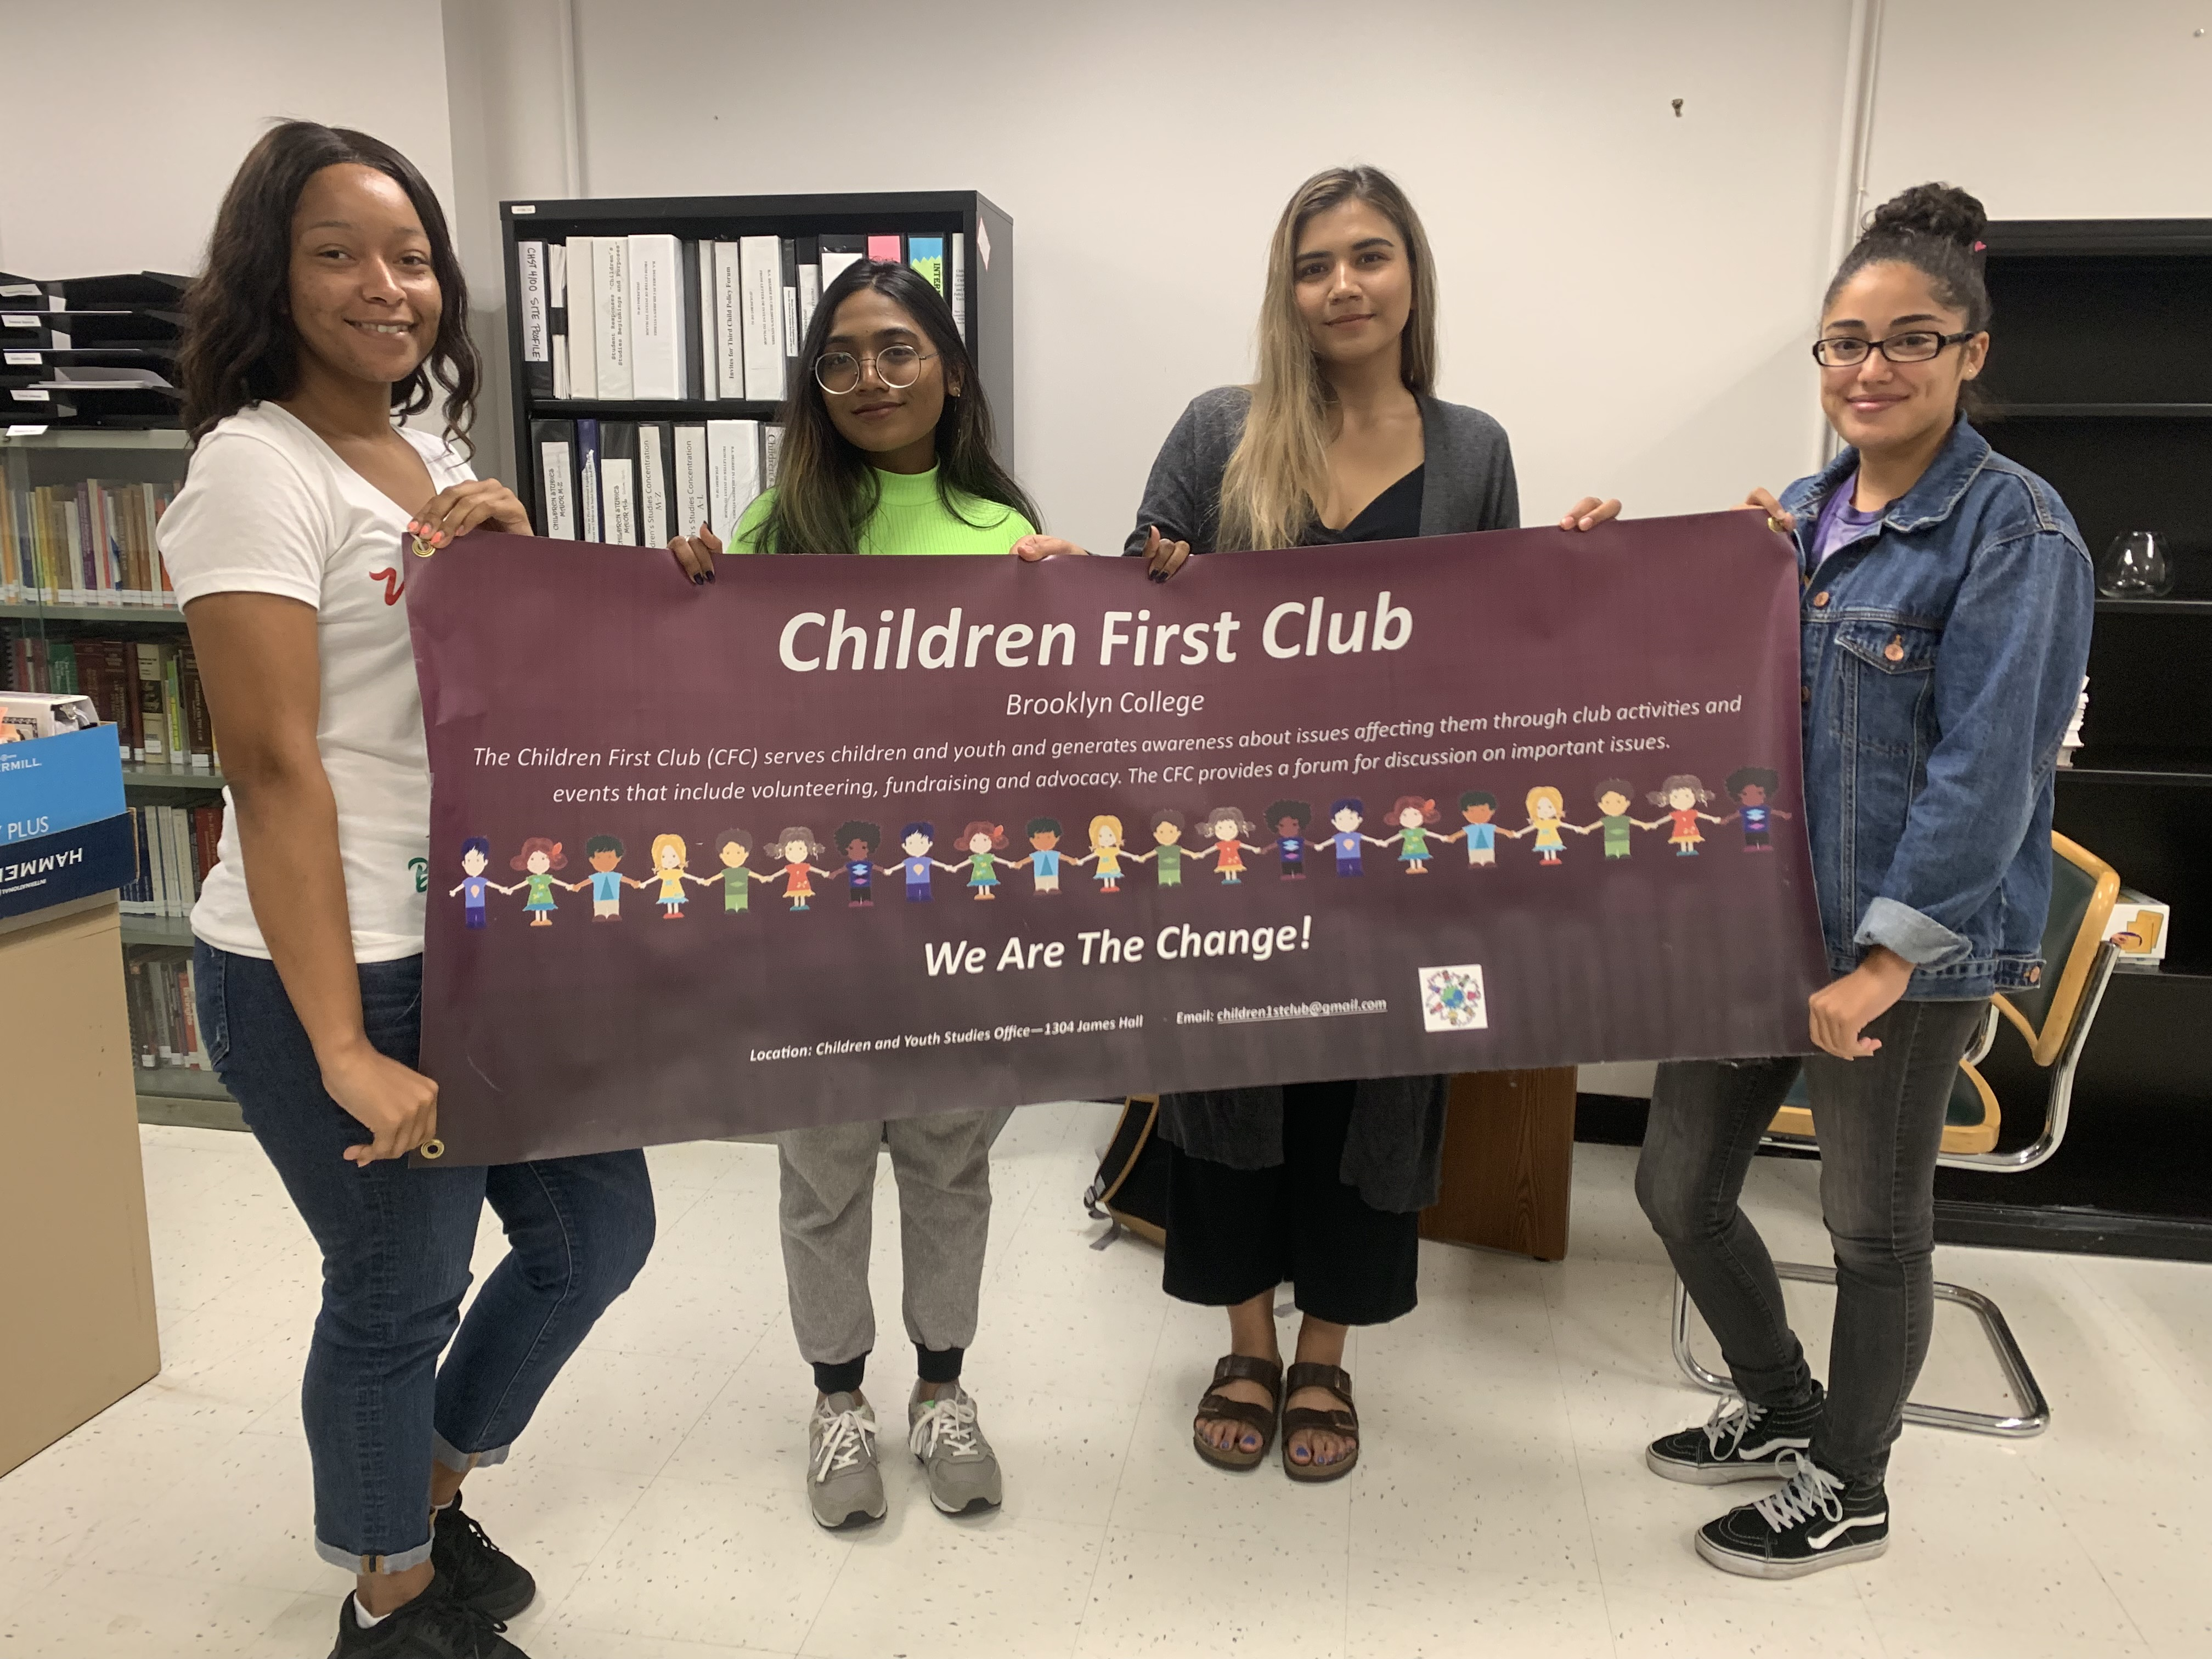 Children First Club Members: Zekiiyah (Vice President & Club Connector), Parapar (Treasurer), Dayana (President), and Jacqueline (Secretary)